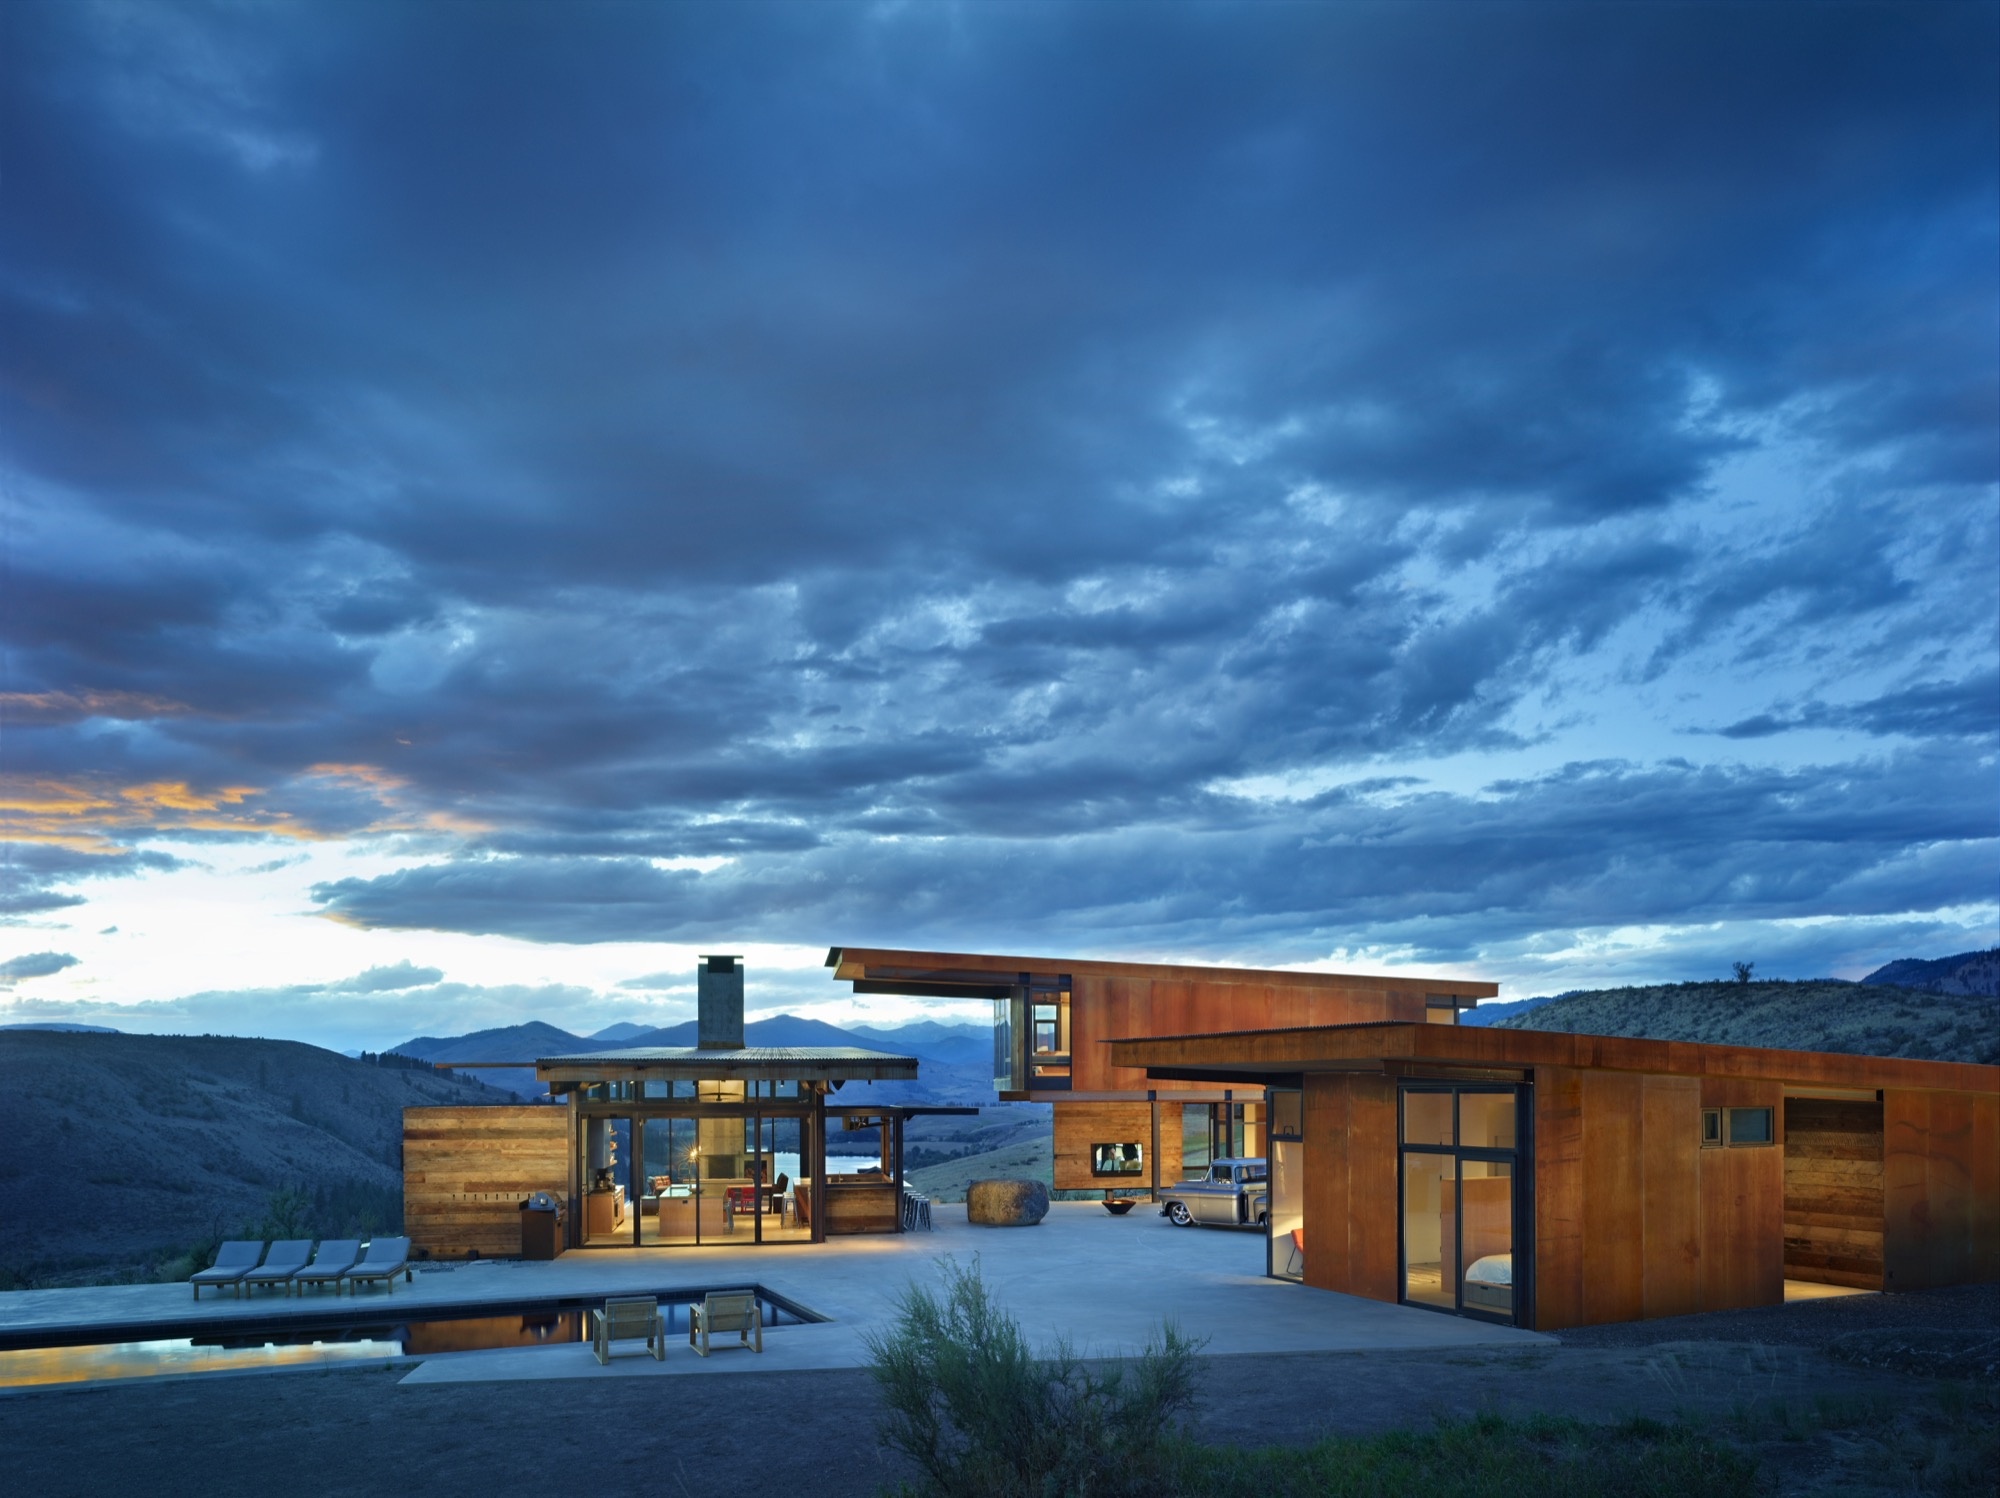 Studhorse Outlook by Olson Kundig Architects